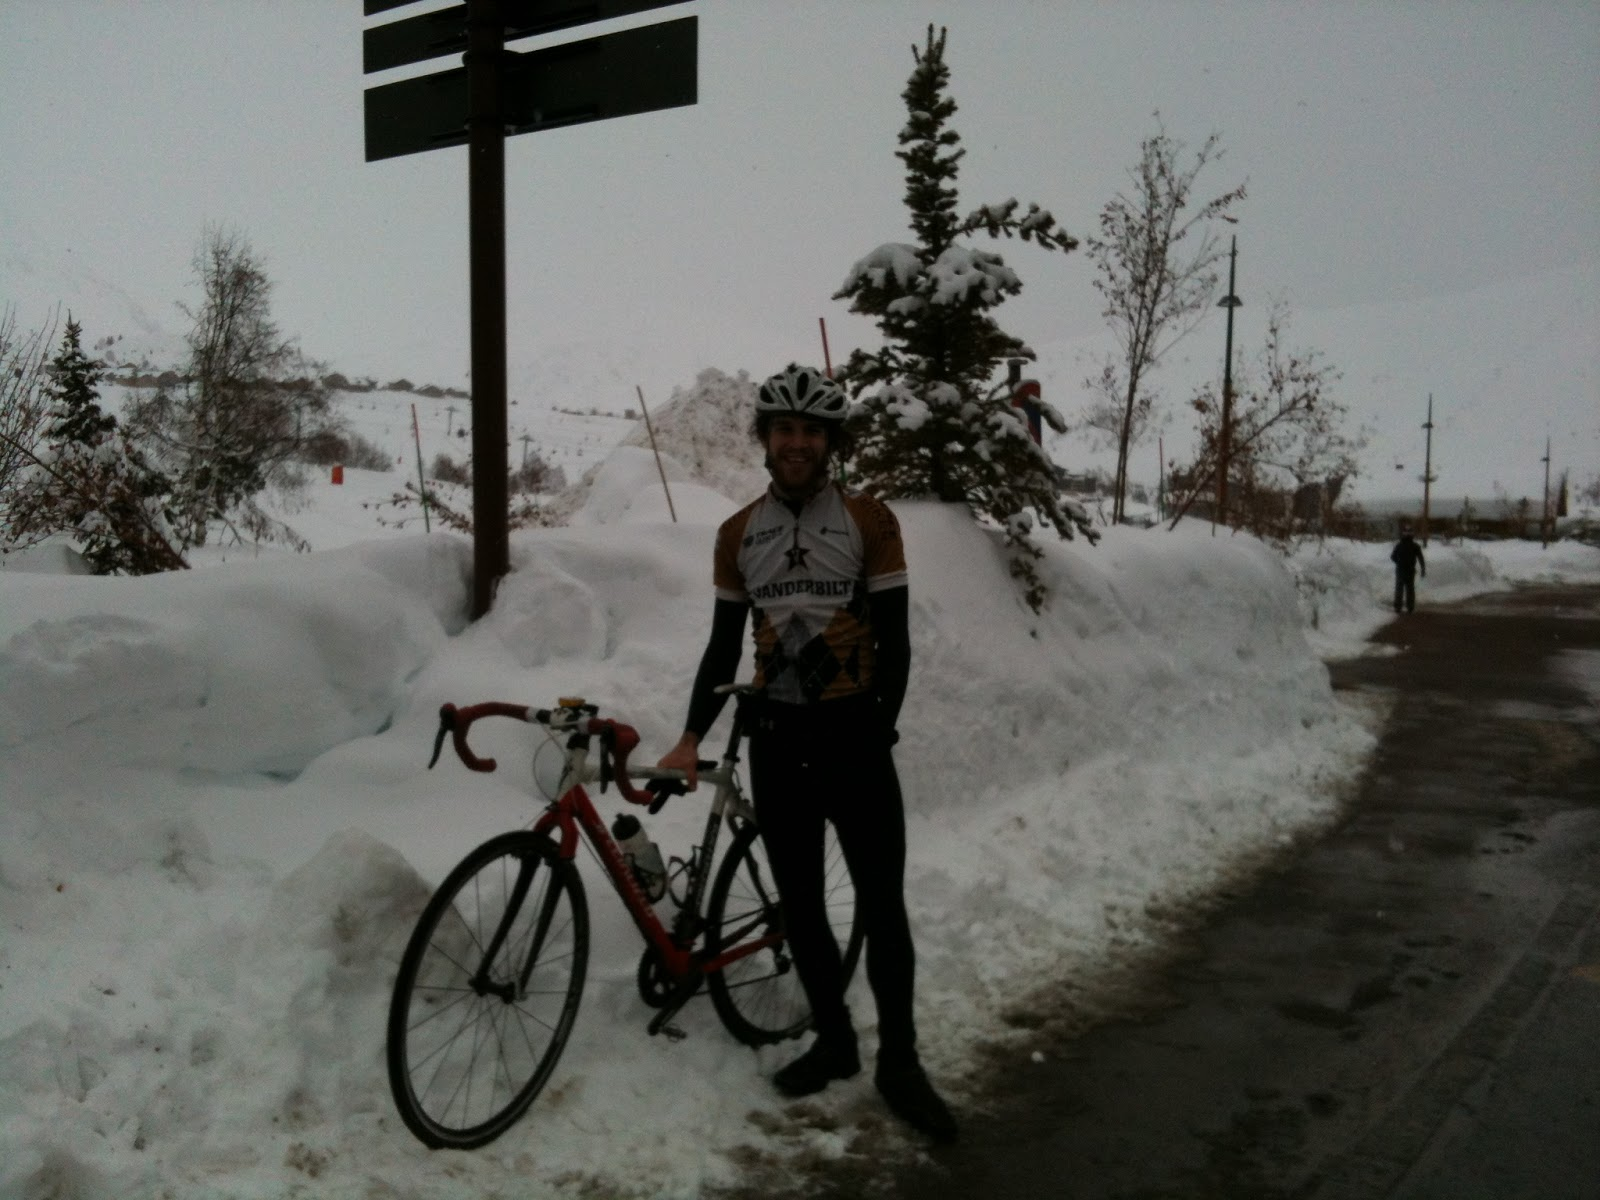 me on Alp d'huez a few days before christmas